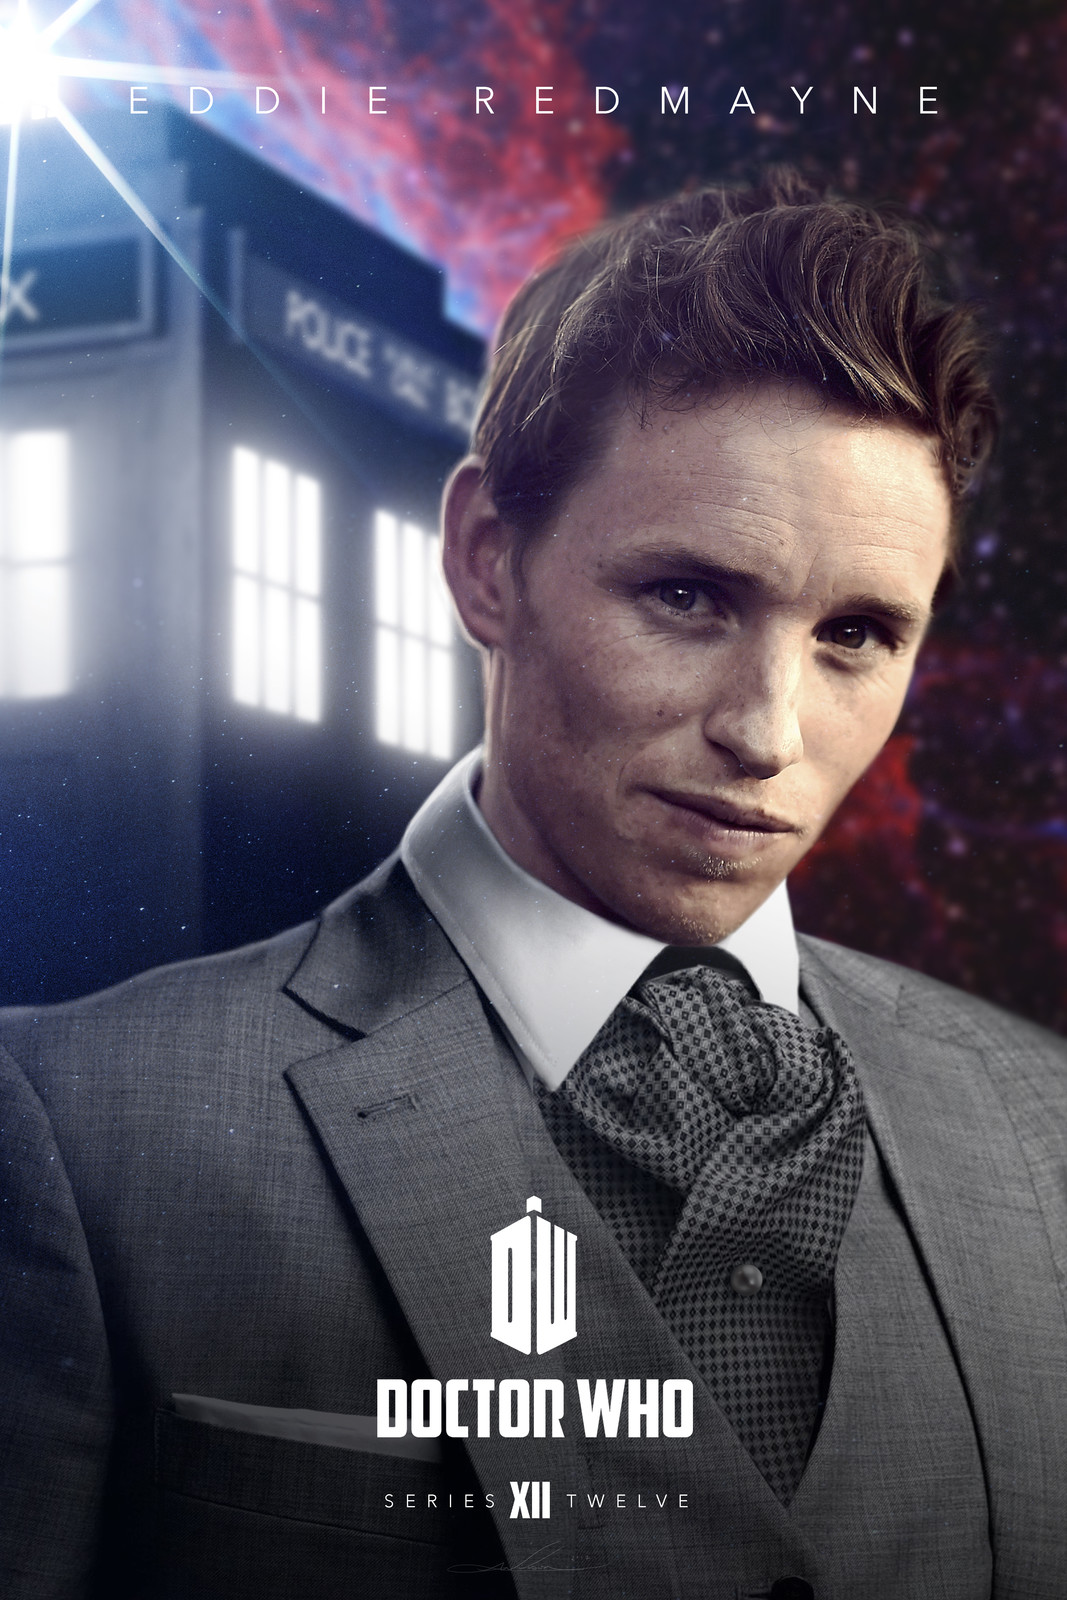 Eddie would make an excellent Doctor.